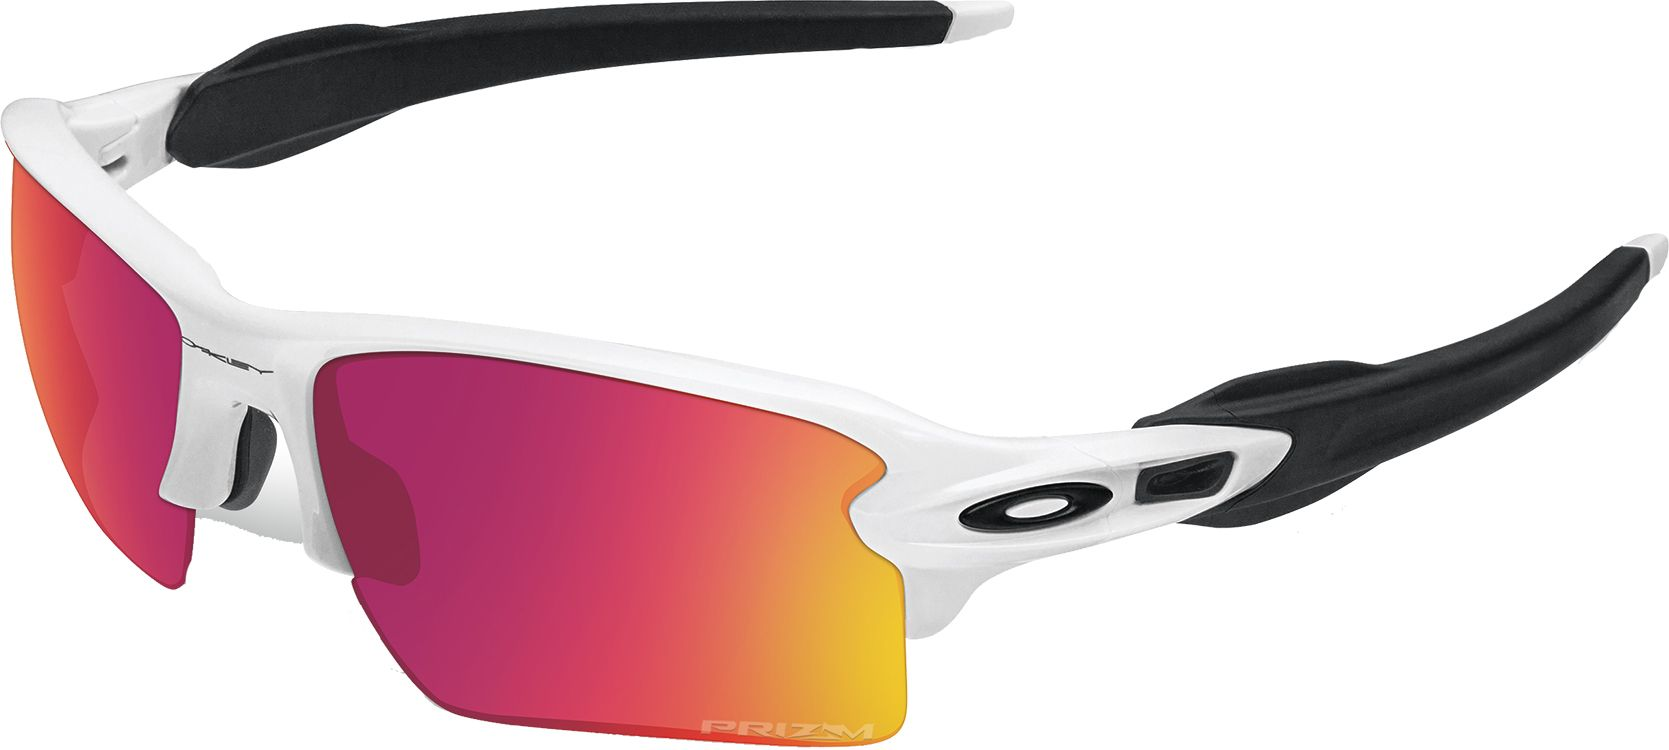 best oakley sunglasses for baseball players  product image oakley flak 2.0 xl baseball sunglasses